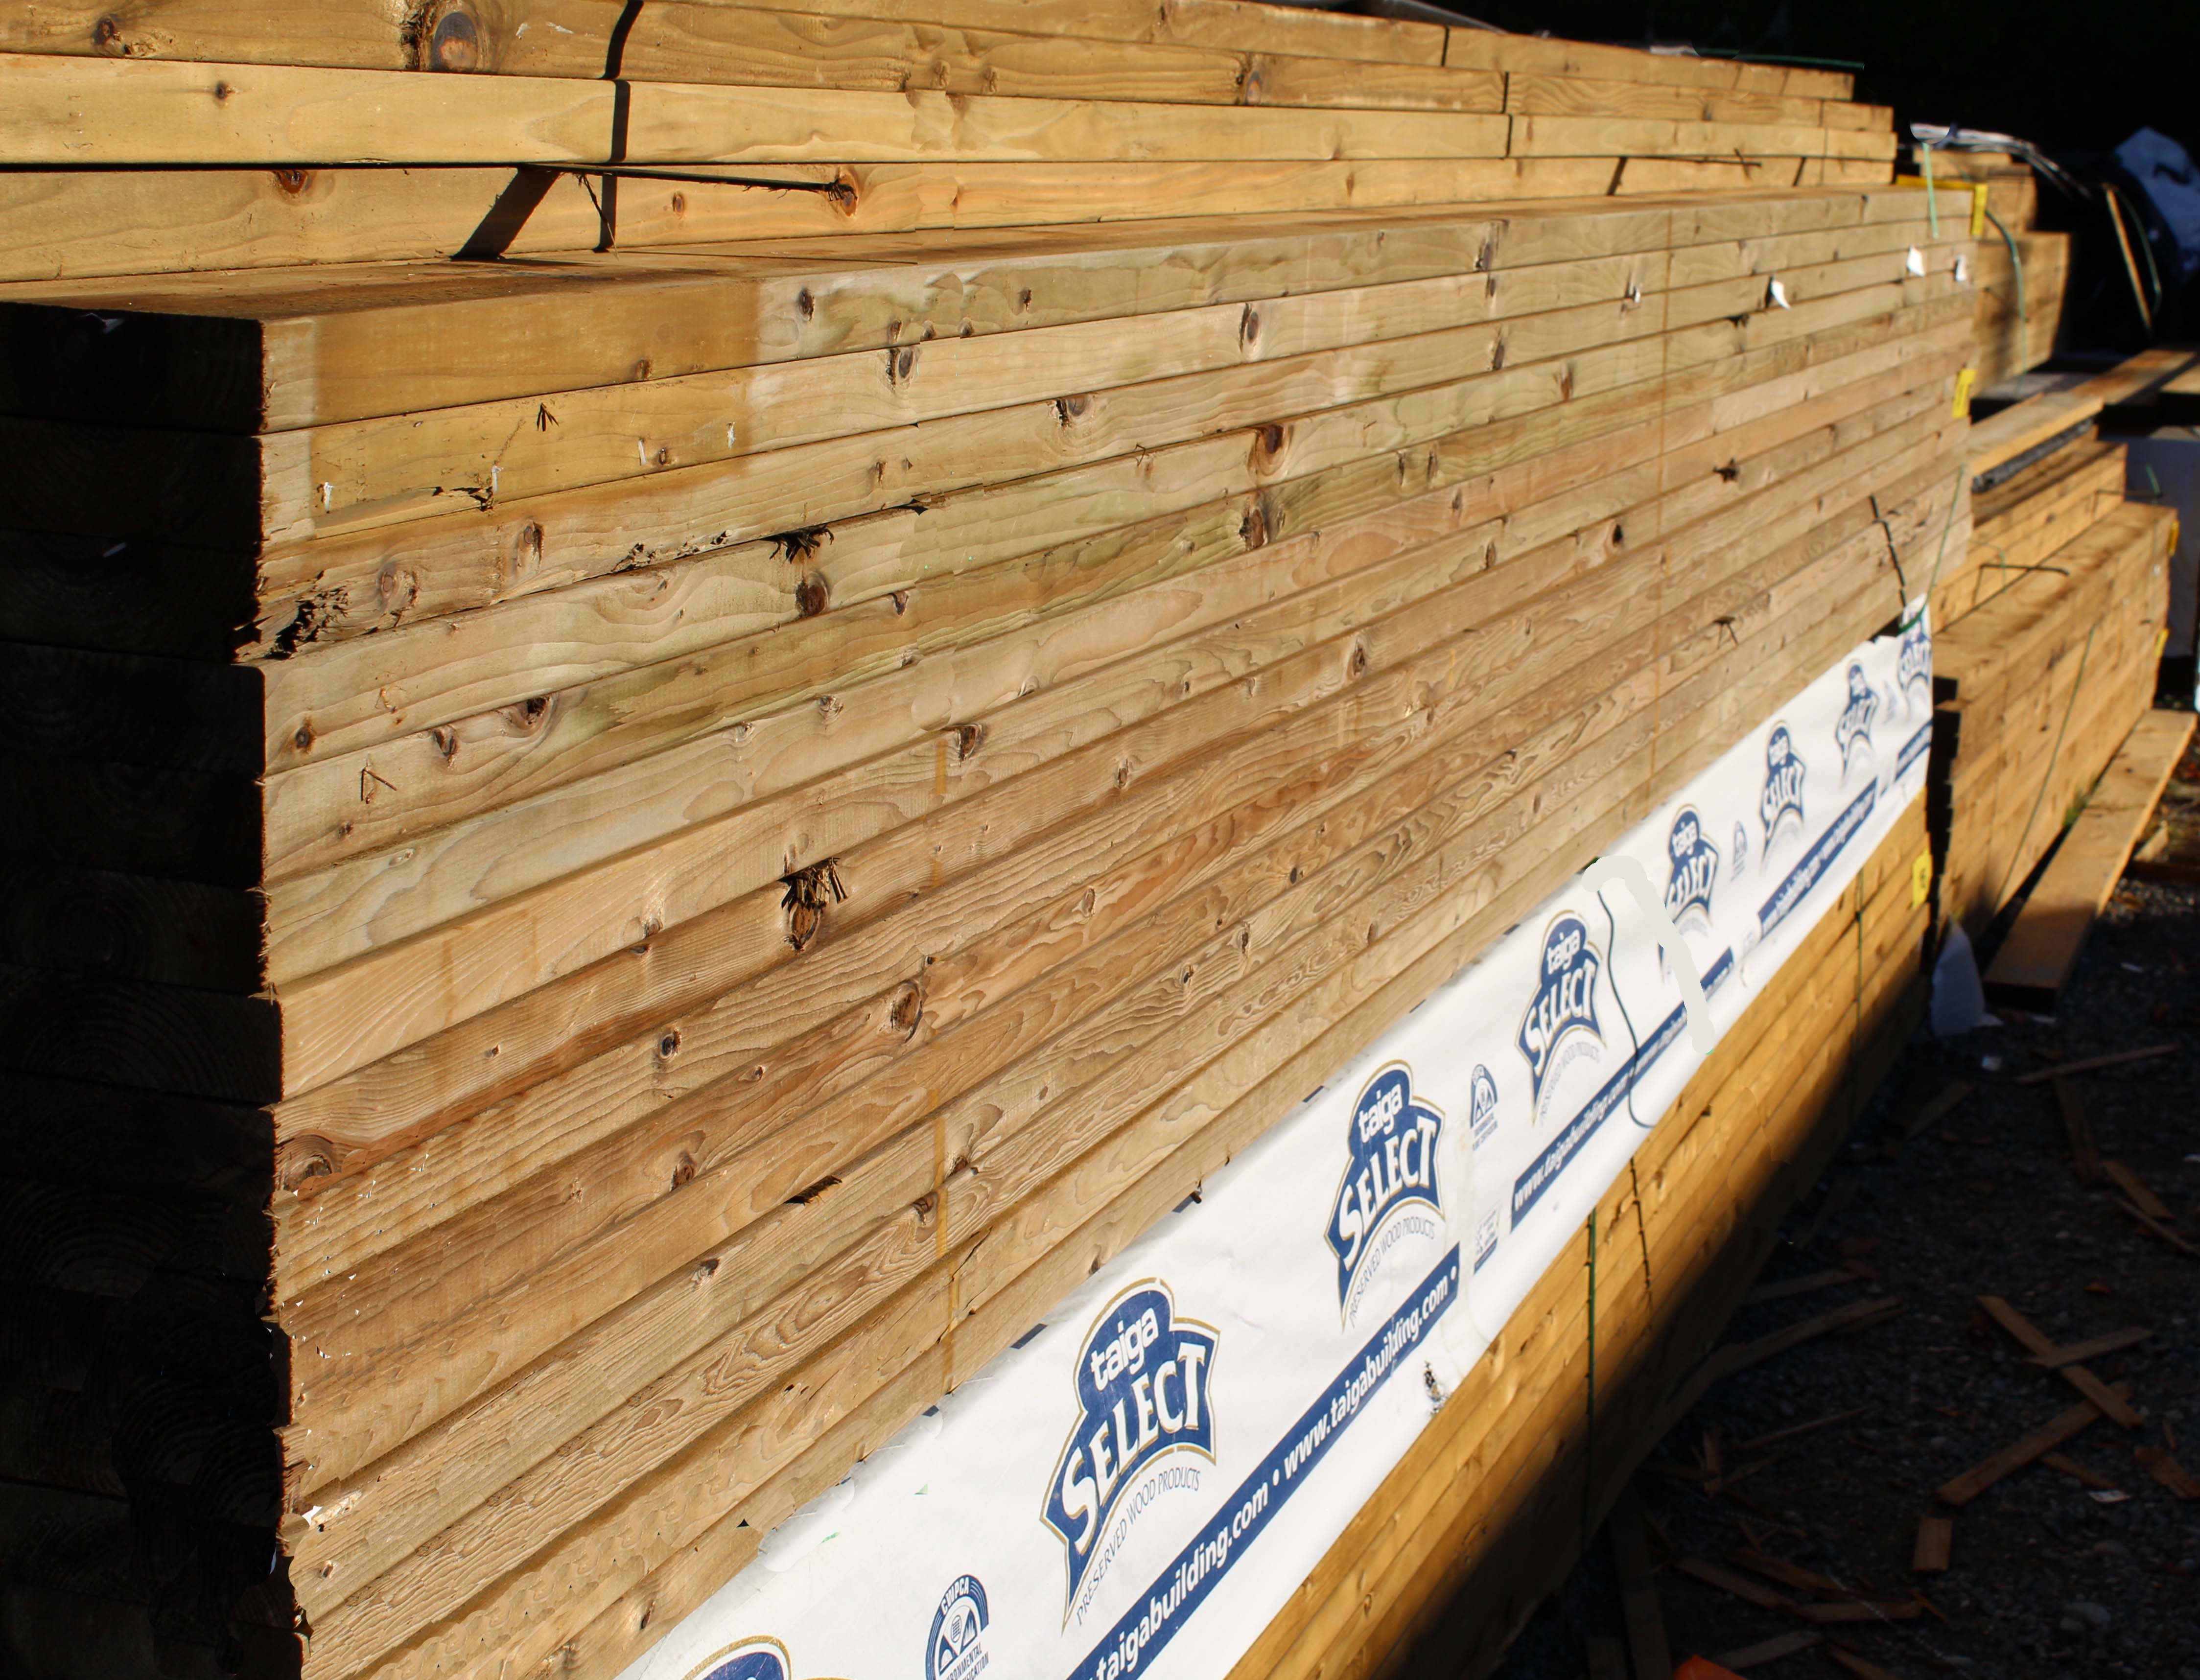 Variety of Wood and Lumber